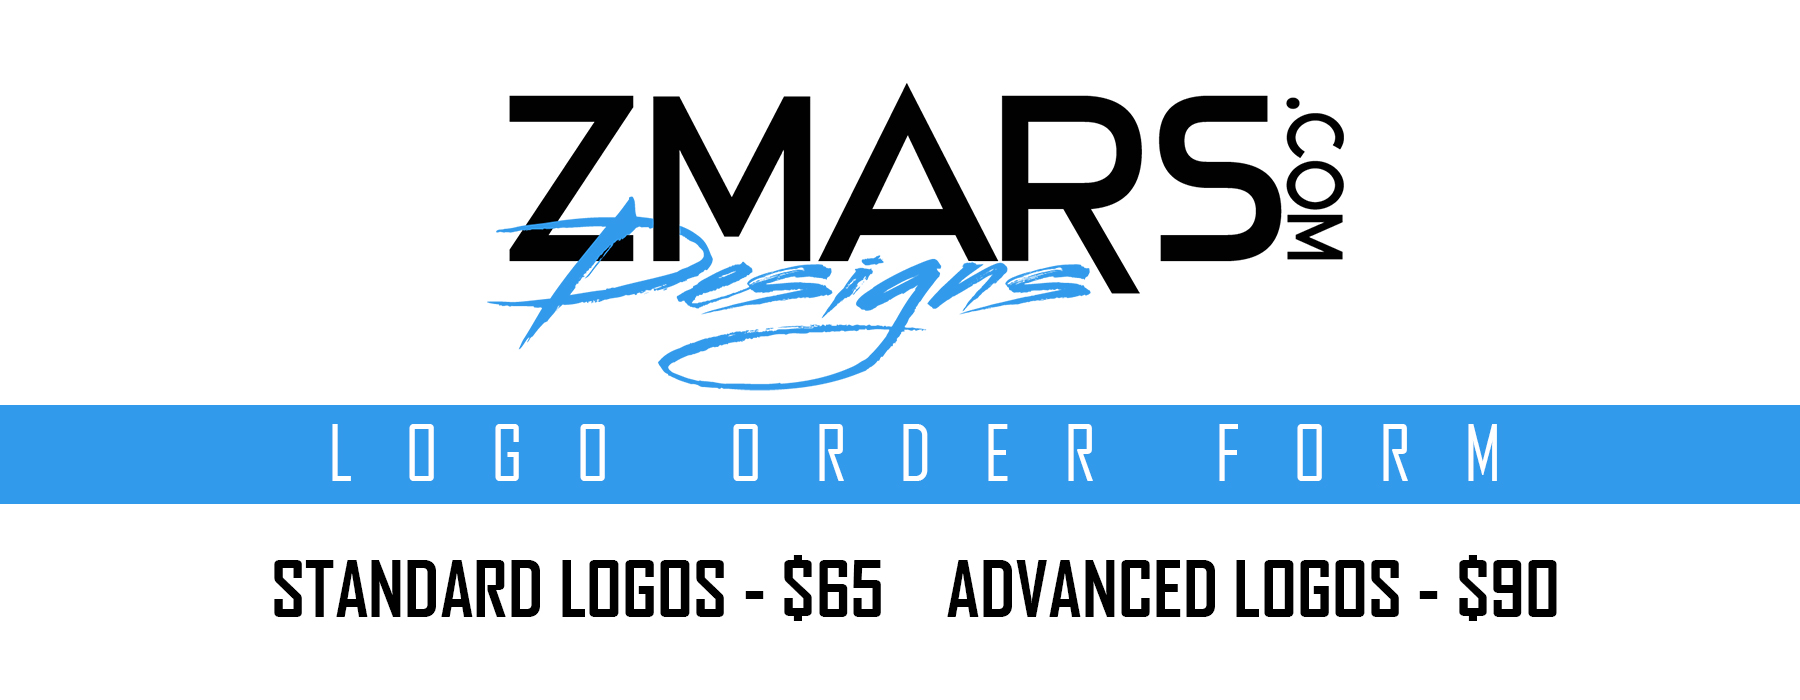 LOGO ORDER FORM on customer newsletter, customer info, customer email, customer search, customer purchase order, customer events, customer order tracking, accounts receivable form, accounts payable form, customer contract, customer with bags, sample sales receipt form, customer order icon, customer order label, customer notification, customer ordering, crp form, customer order tables, humana health and wellness form, customer order history,